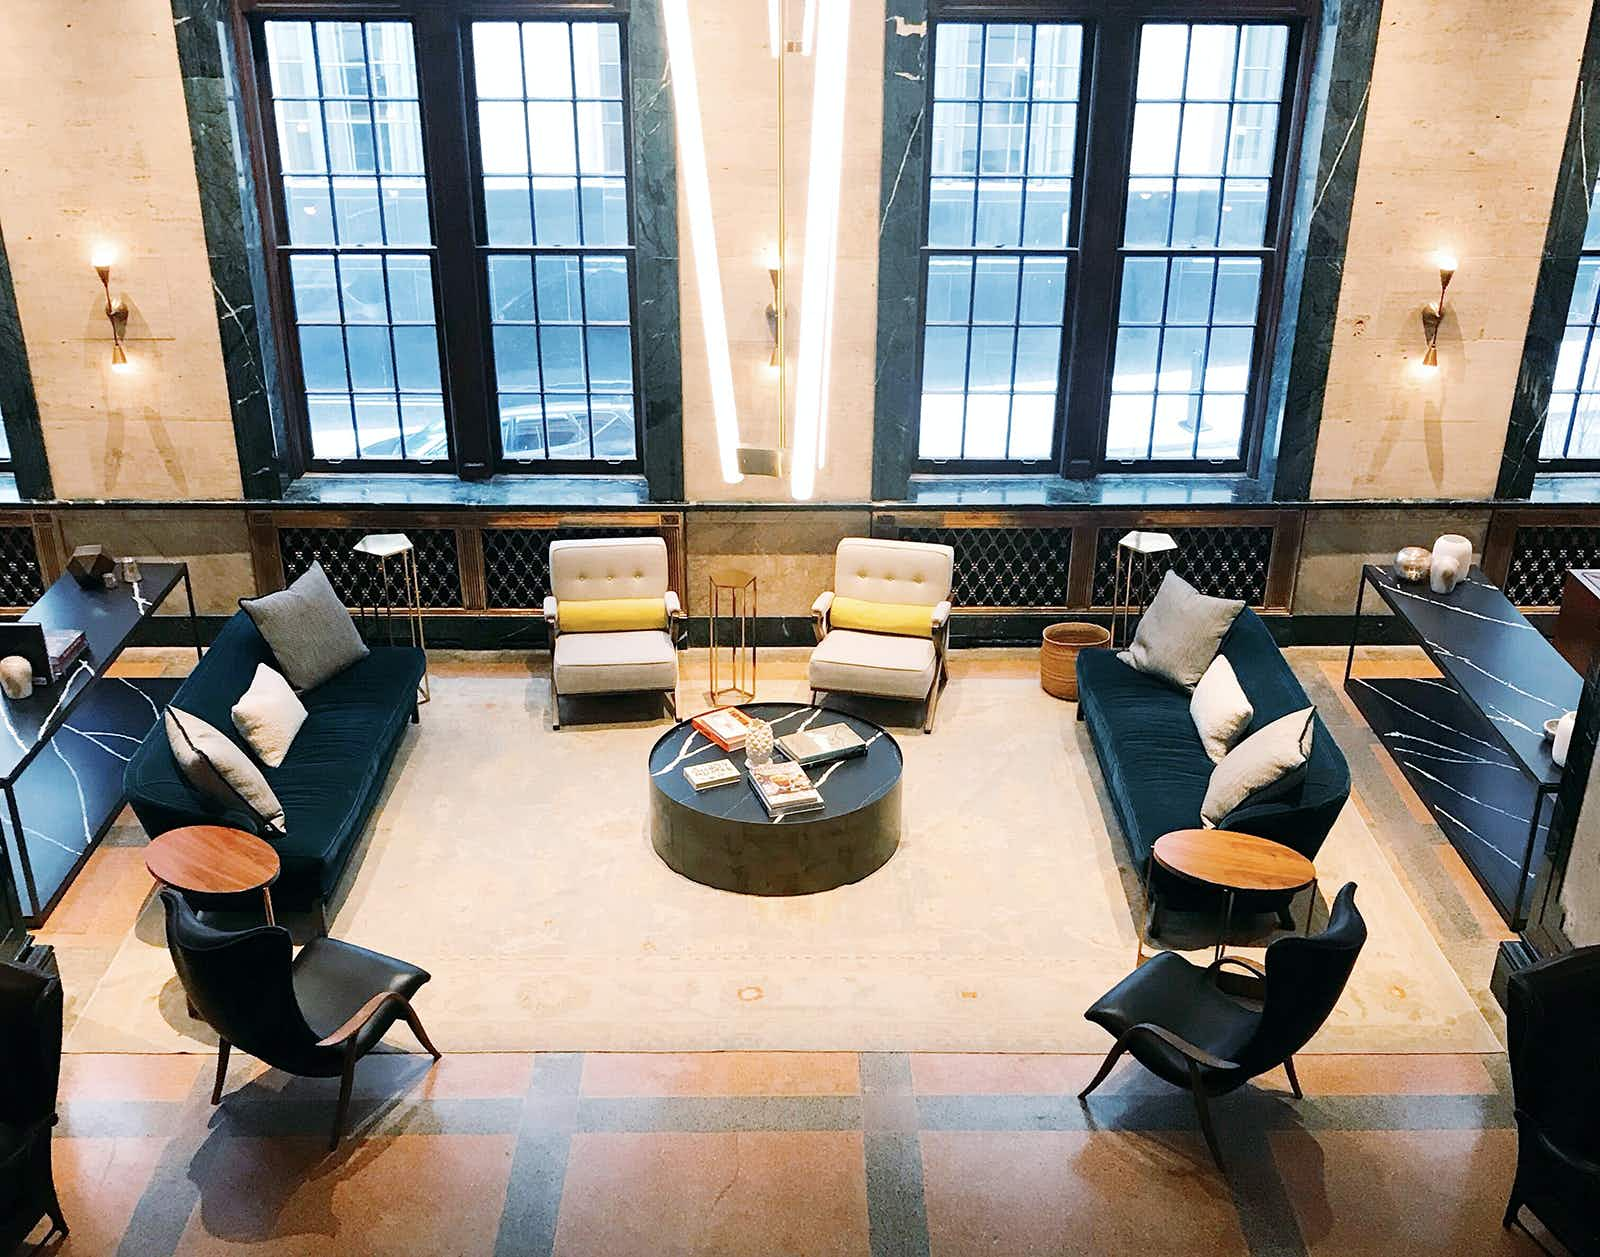 The well-appointed lobby of the Noelle hotel is a hangout for visitors and locals © Mikki Brammer / Lonely Planet